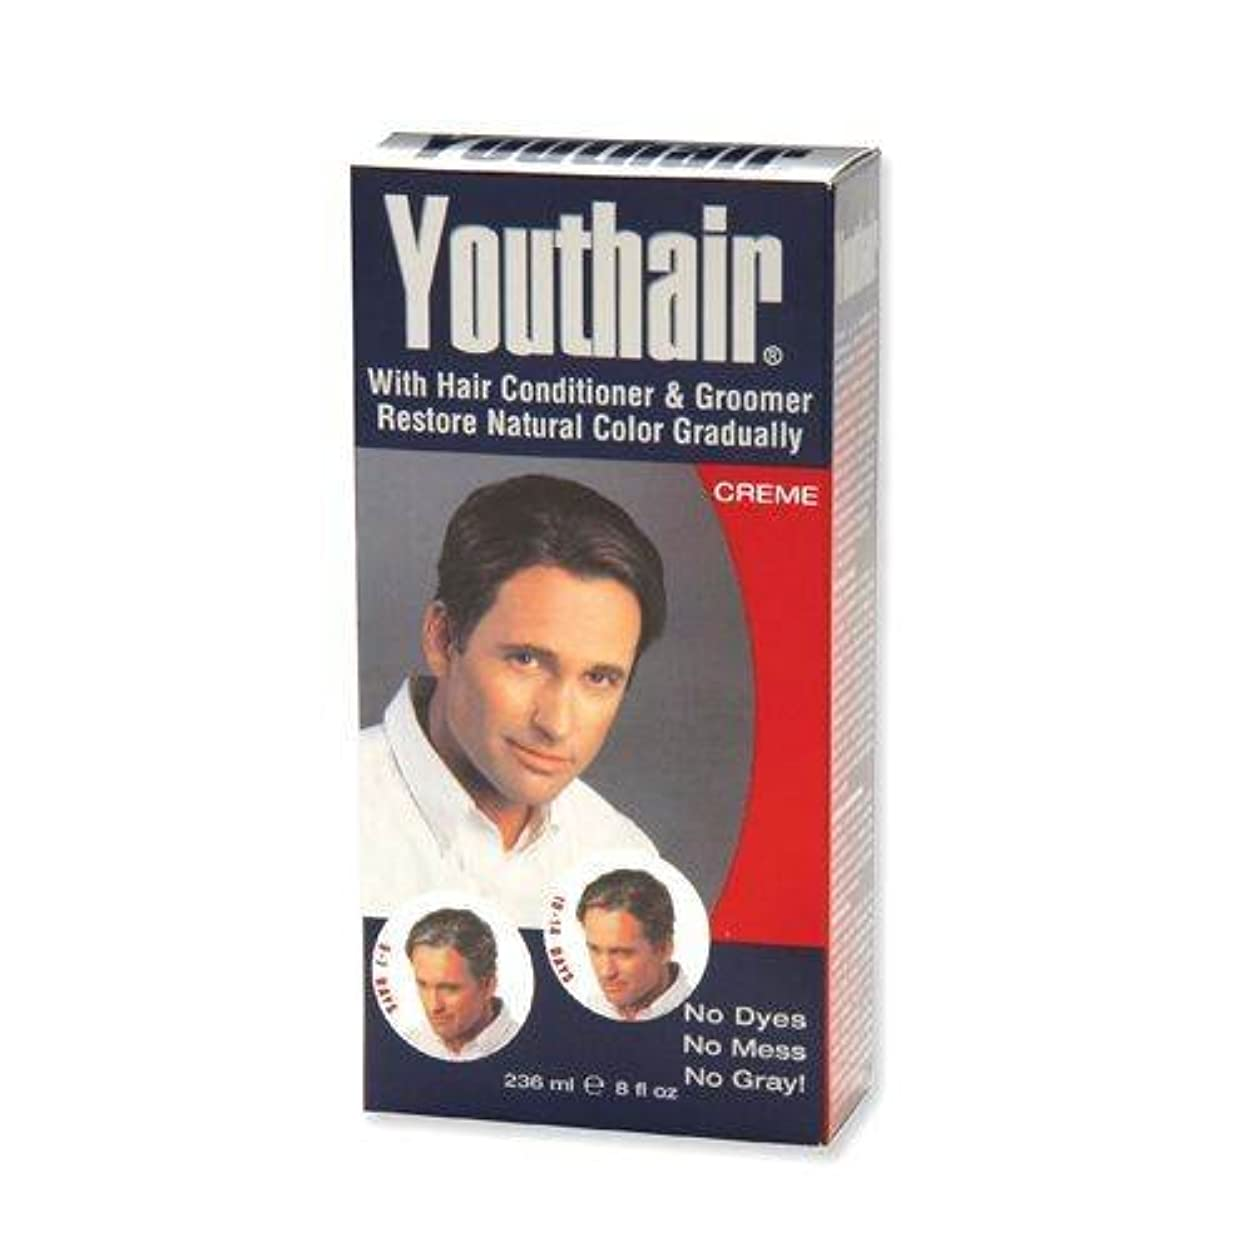 悲観的露恥YOUTHAIR Creme for Men with Hair Conditioner & Groomer Restore Natural Color Gradually 8oz/236ml by Youthair